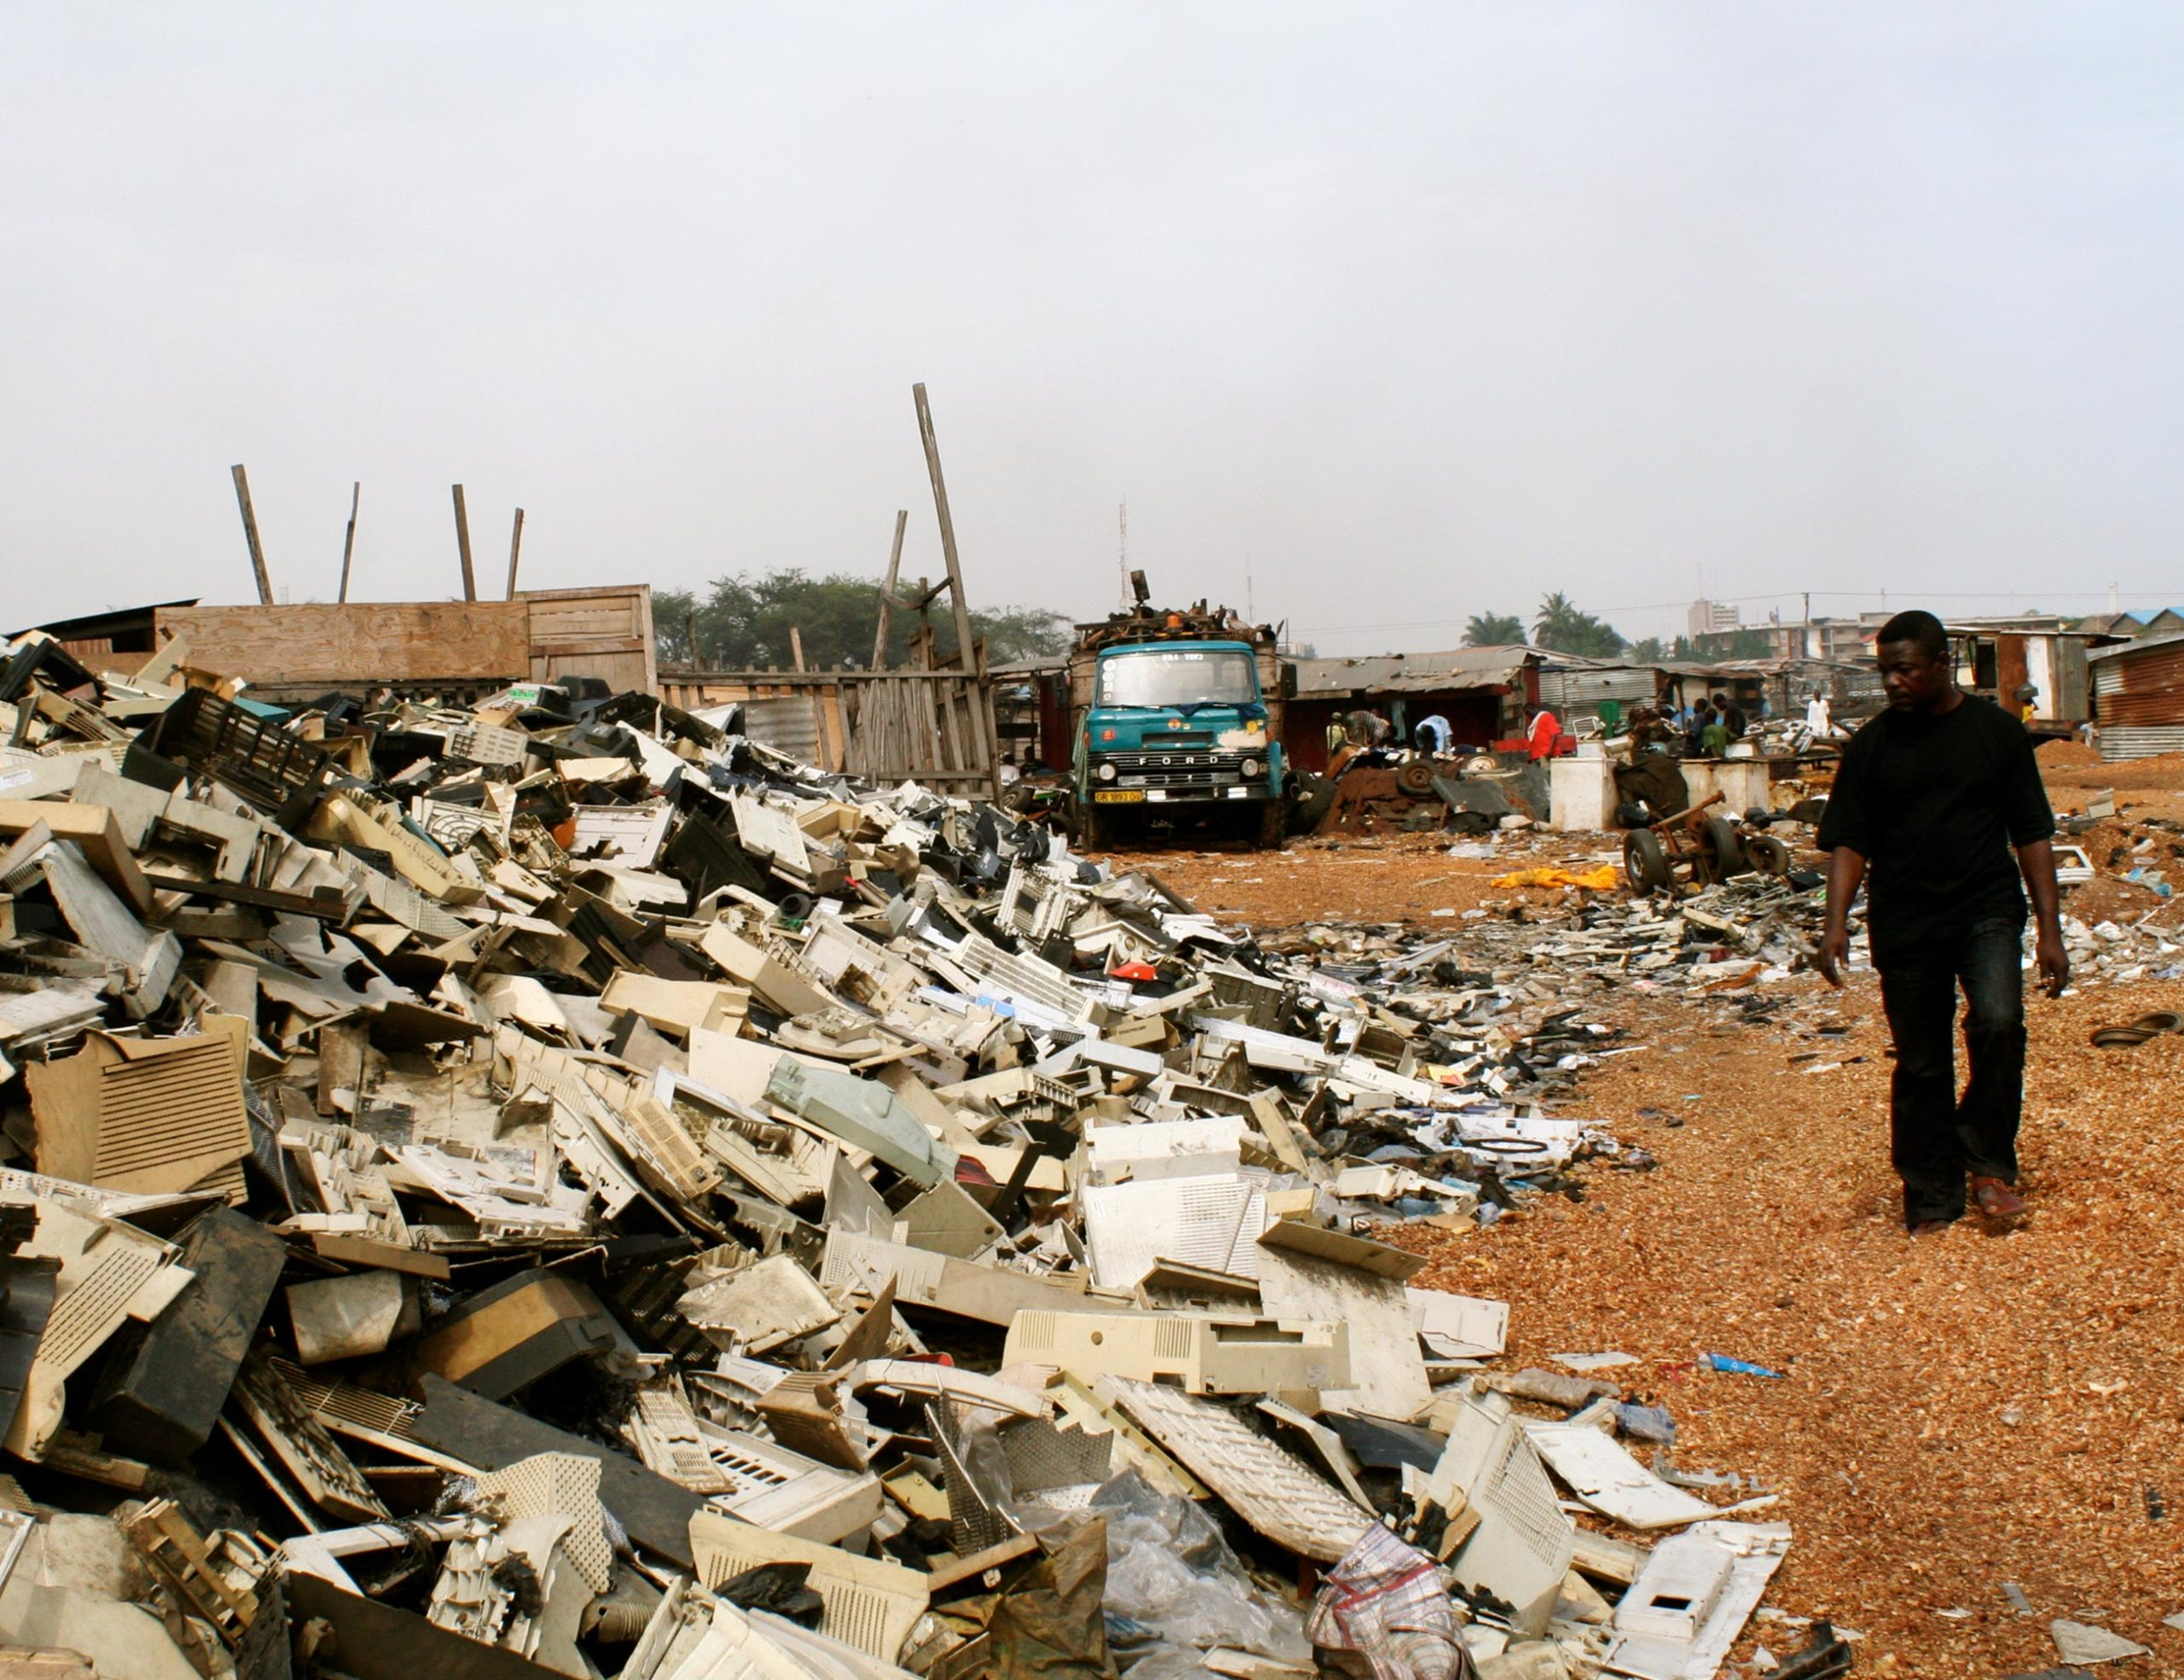 Ghana: Digital Dumping Ground